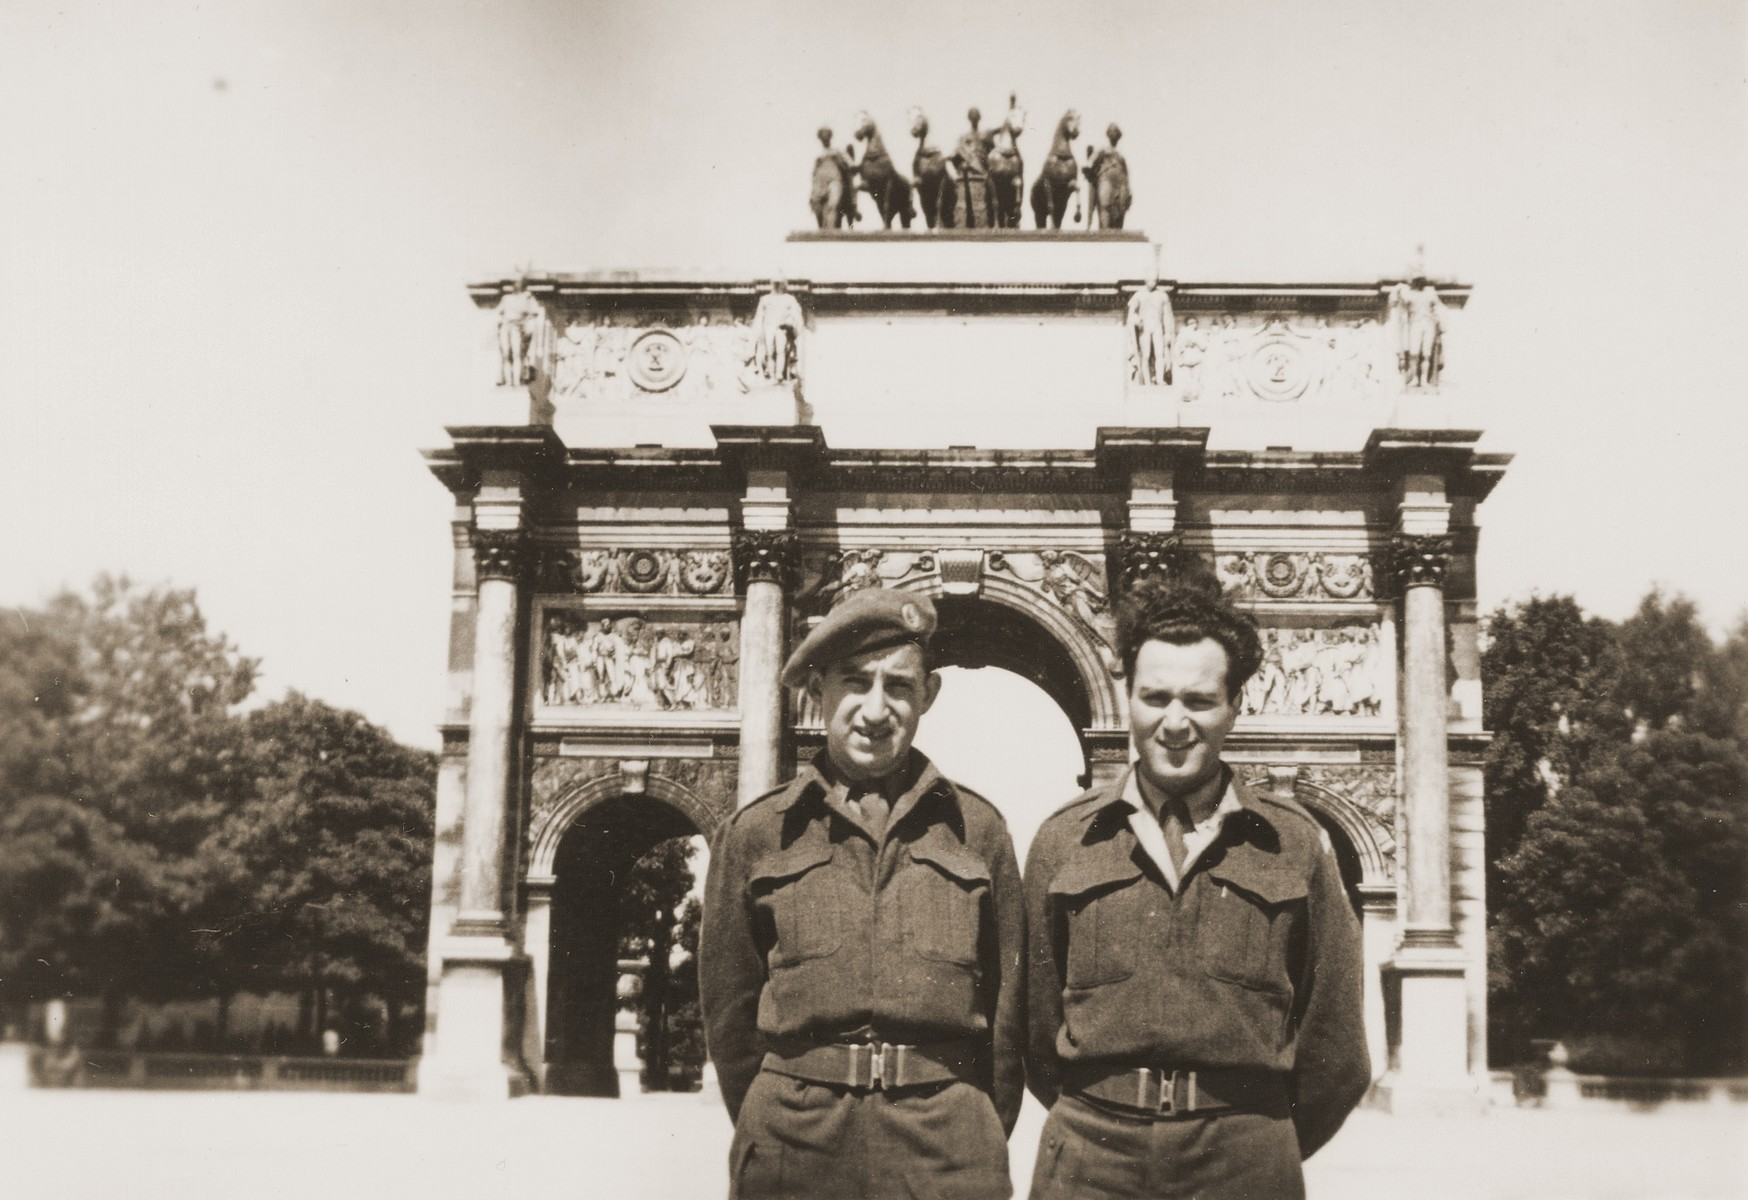 Two Jewish Brigade soldiers pose in front of the Arc de Triomphe du Carrousel in Paris.  Pictured are Hersh Makowski and his friend, Eric Gross who had also been with him in Mauritius before joining the Jewish Brigade.